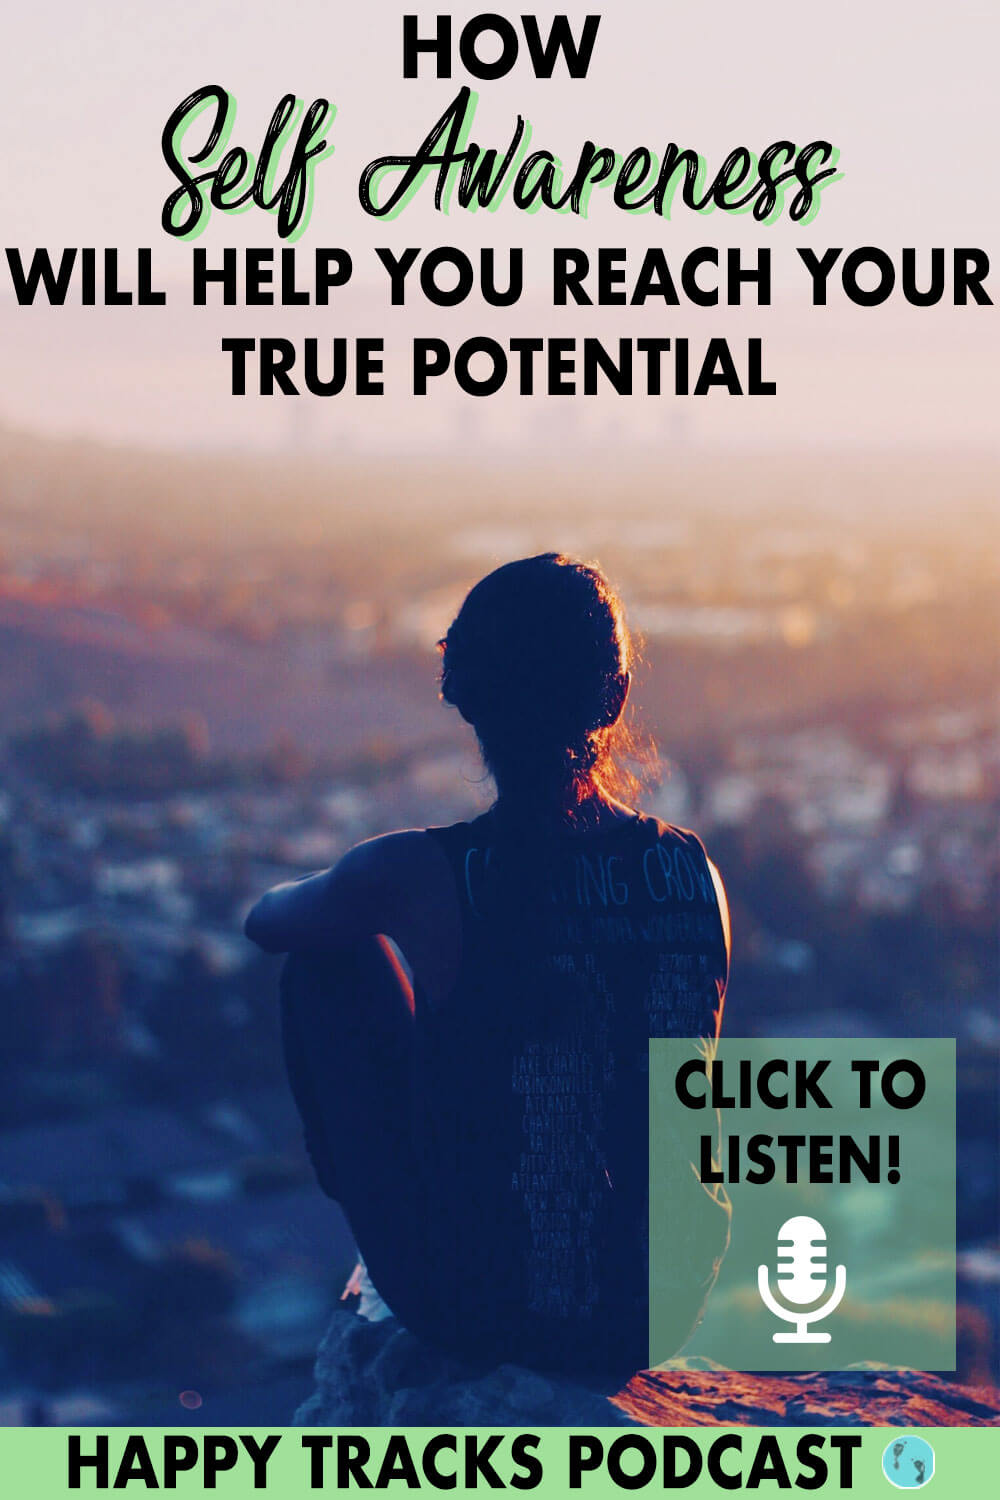 Self awareness is like your own personal superpower. Learning how to be self aware will help you understand yourself better so that you can develop better habits with ease. Click to find out how you can become self aware!